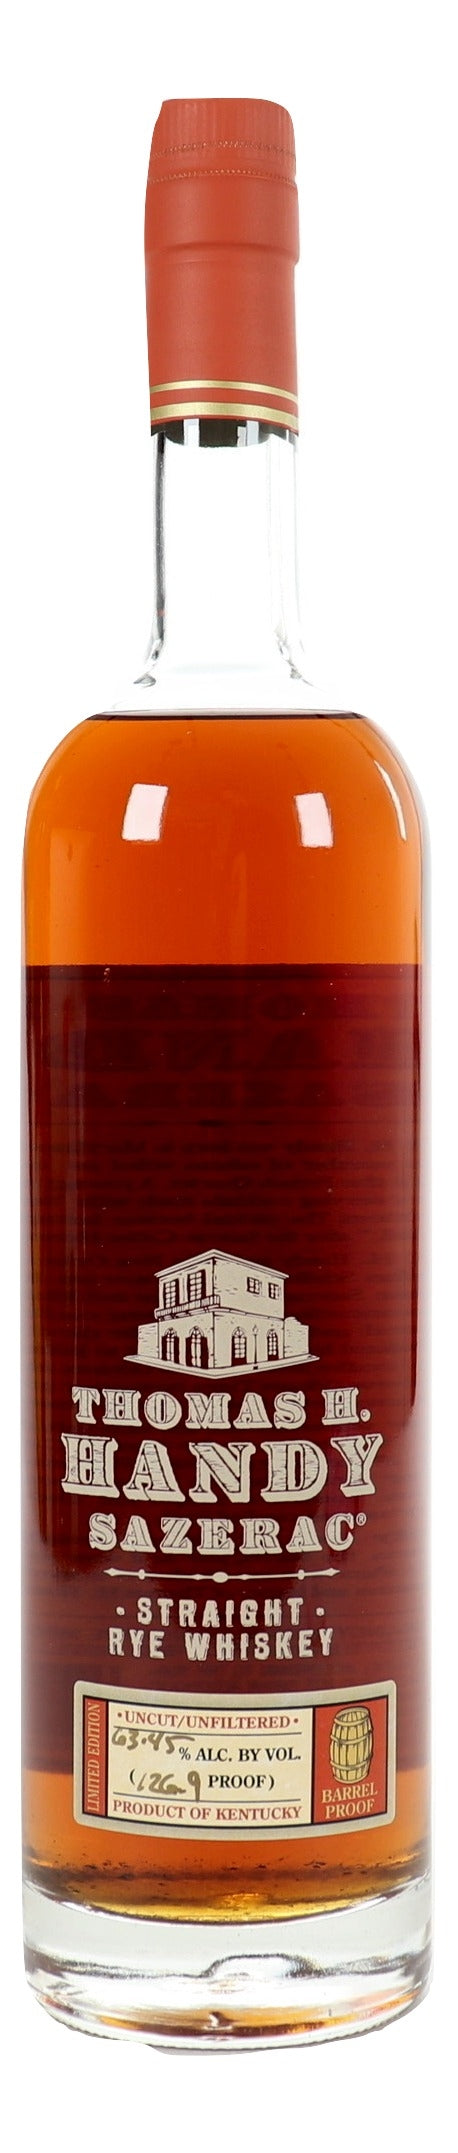 Thomas H. Handy Sazerac 2010 Straight Rye For Sale - NativeSpiritsOnline